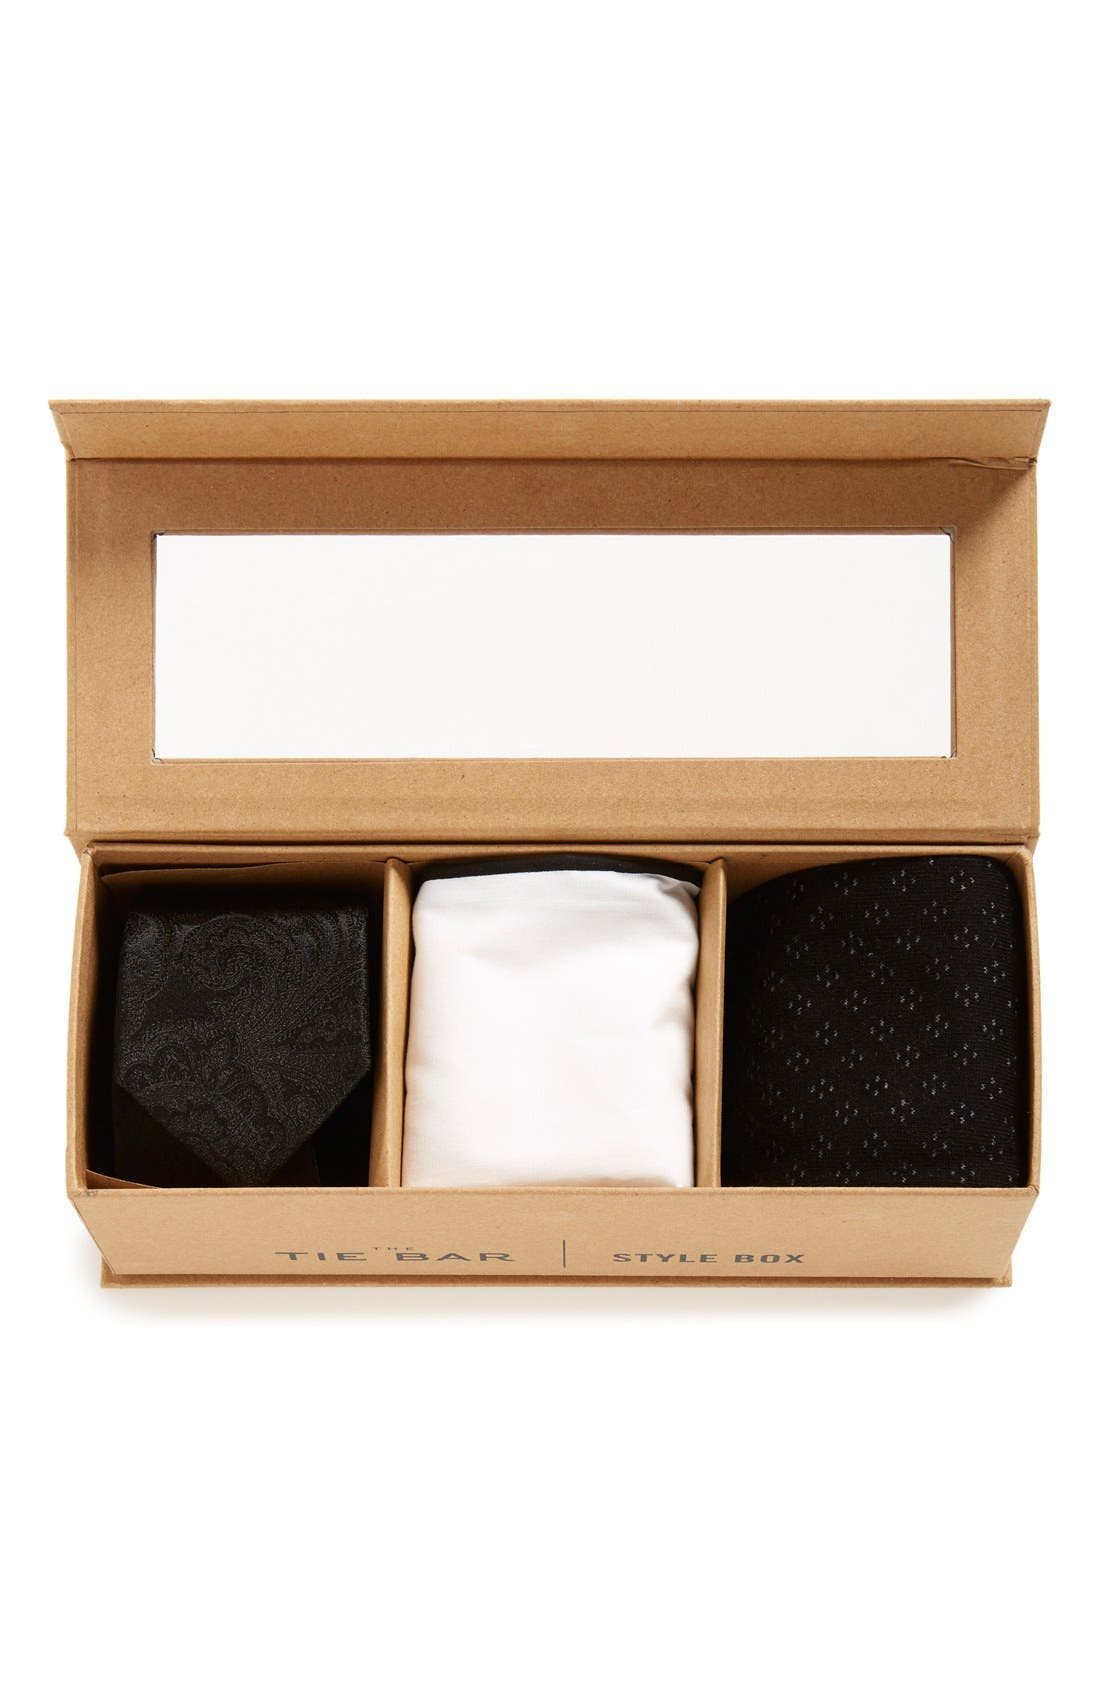 THE TIE BAR Small Style Box